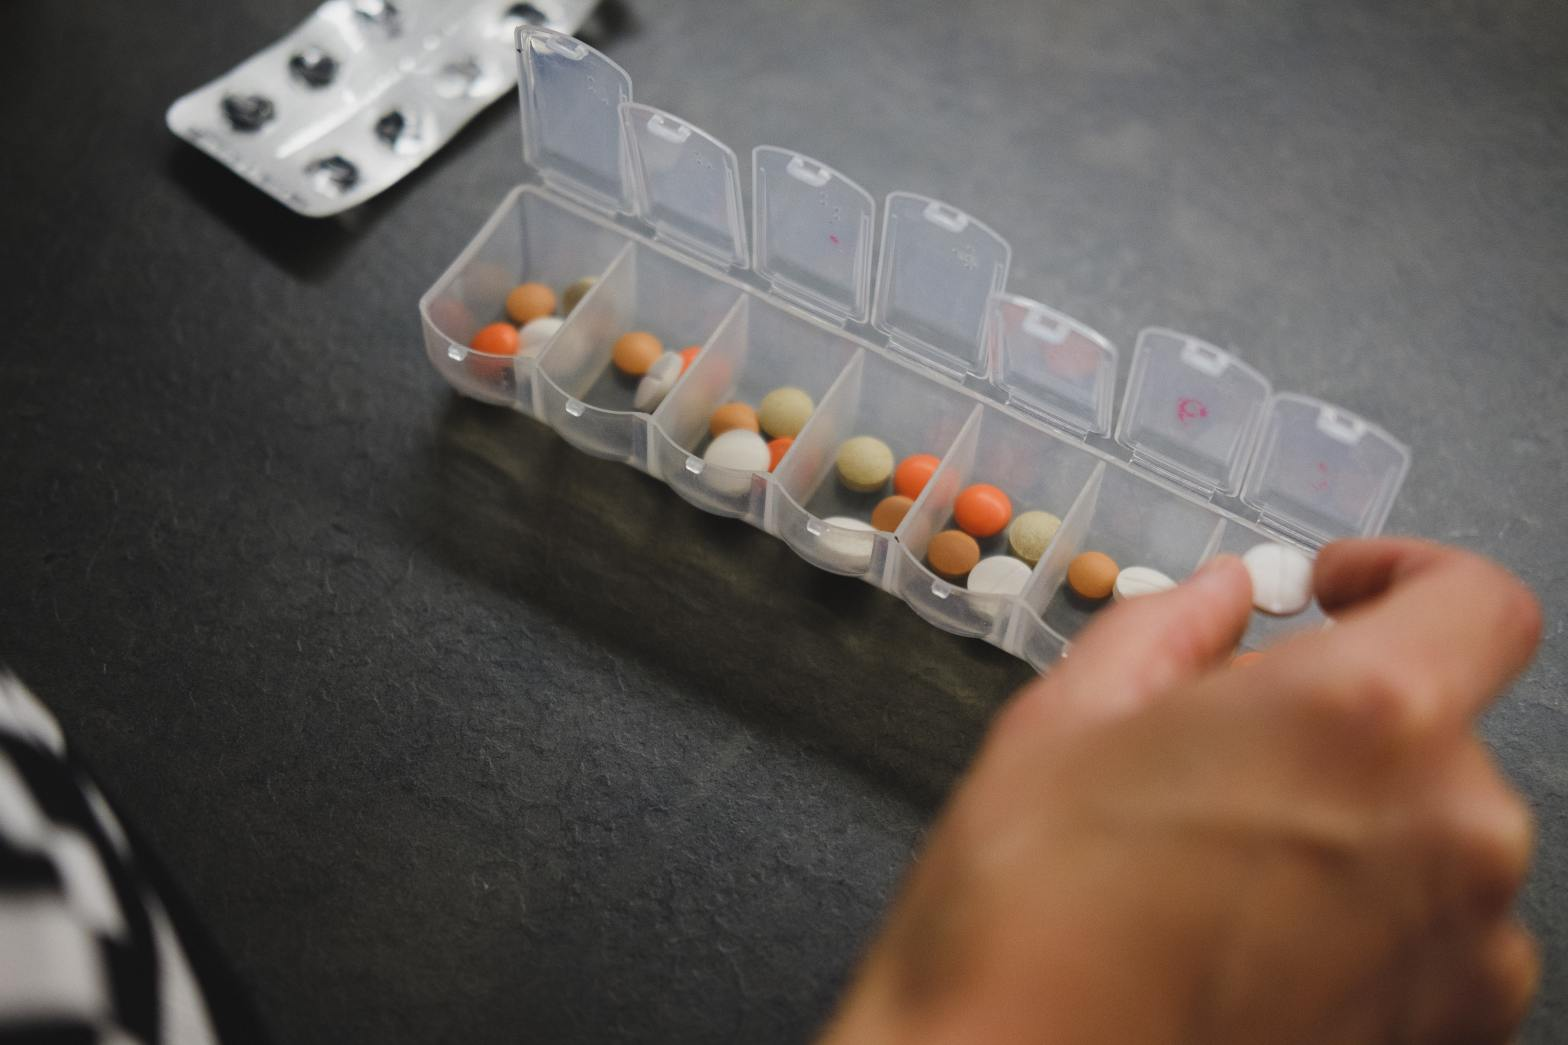 A person is filling their pill container with medication.